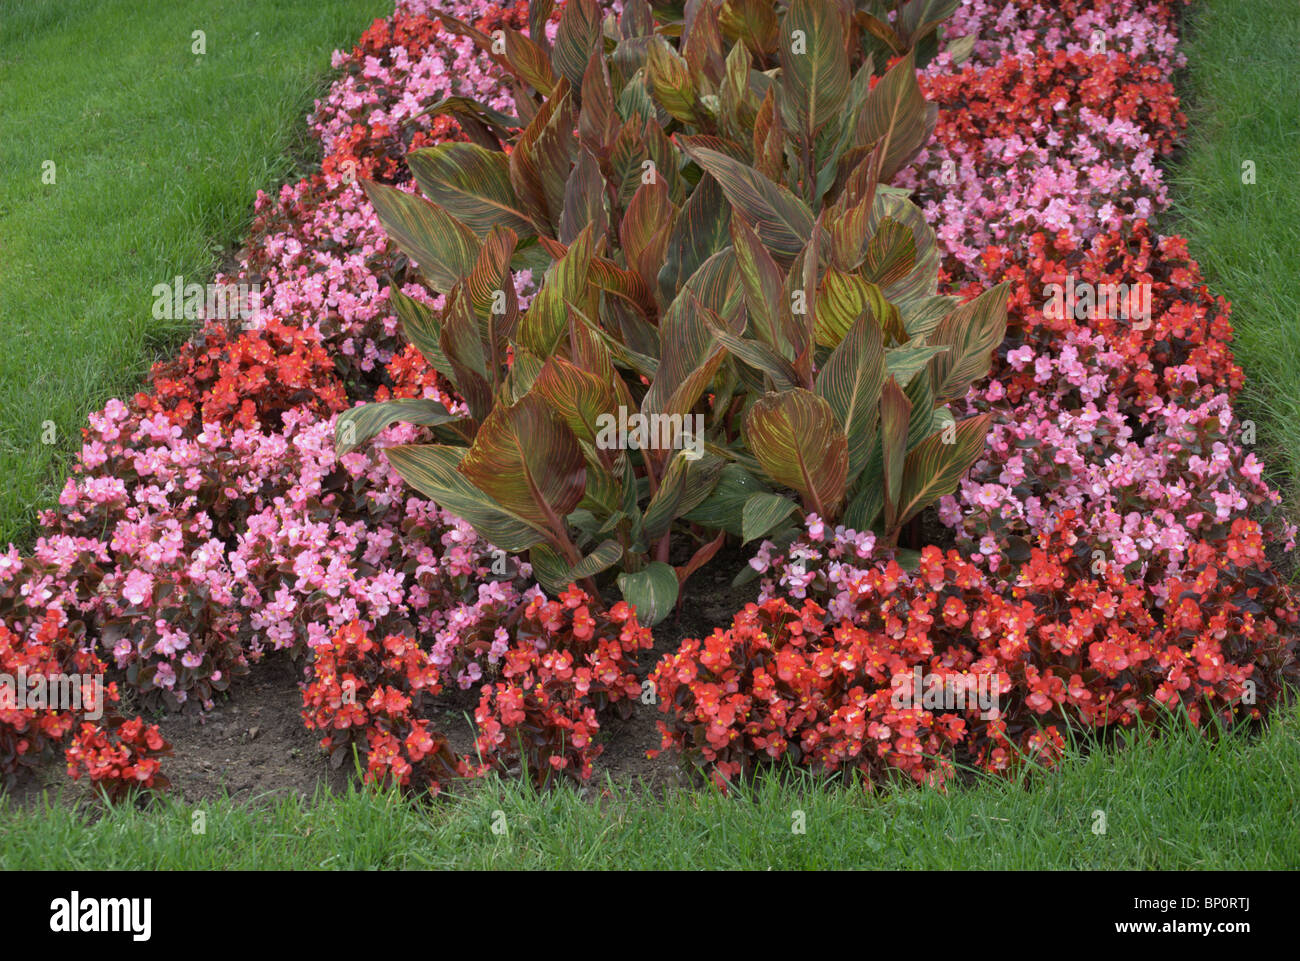 flower bed garden at highland park, rochester ny stock photo